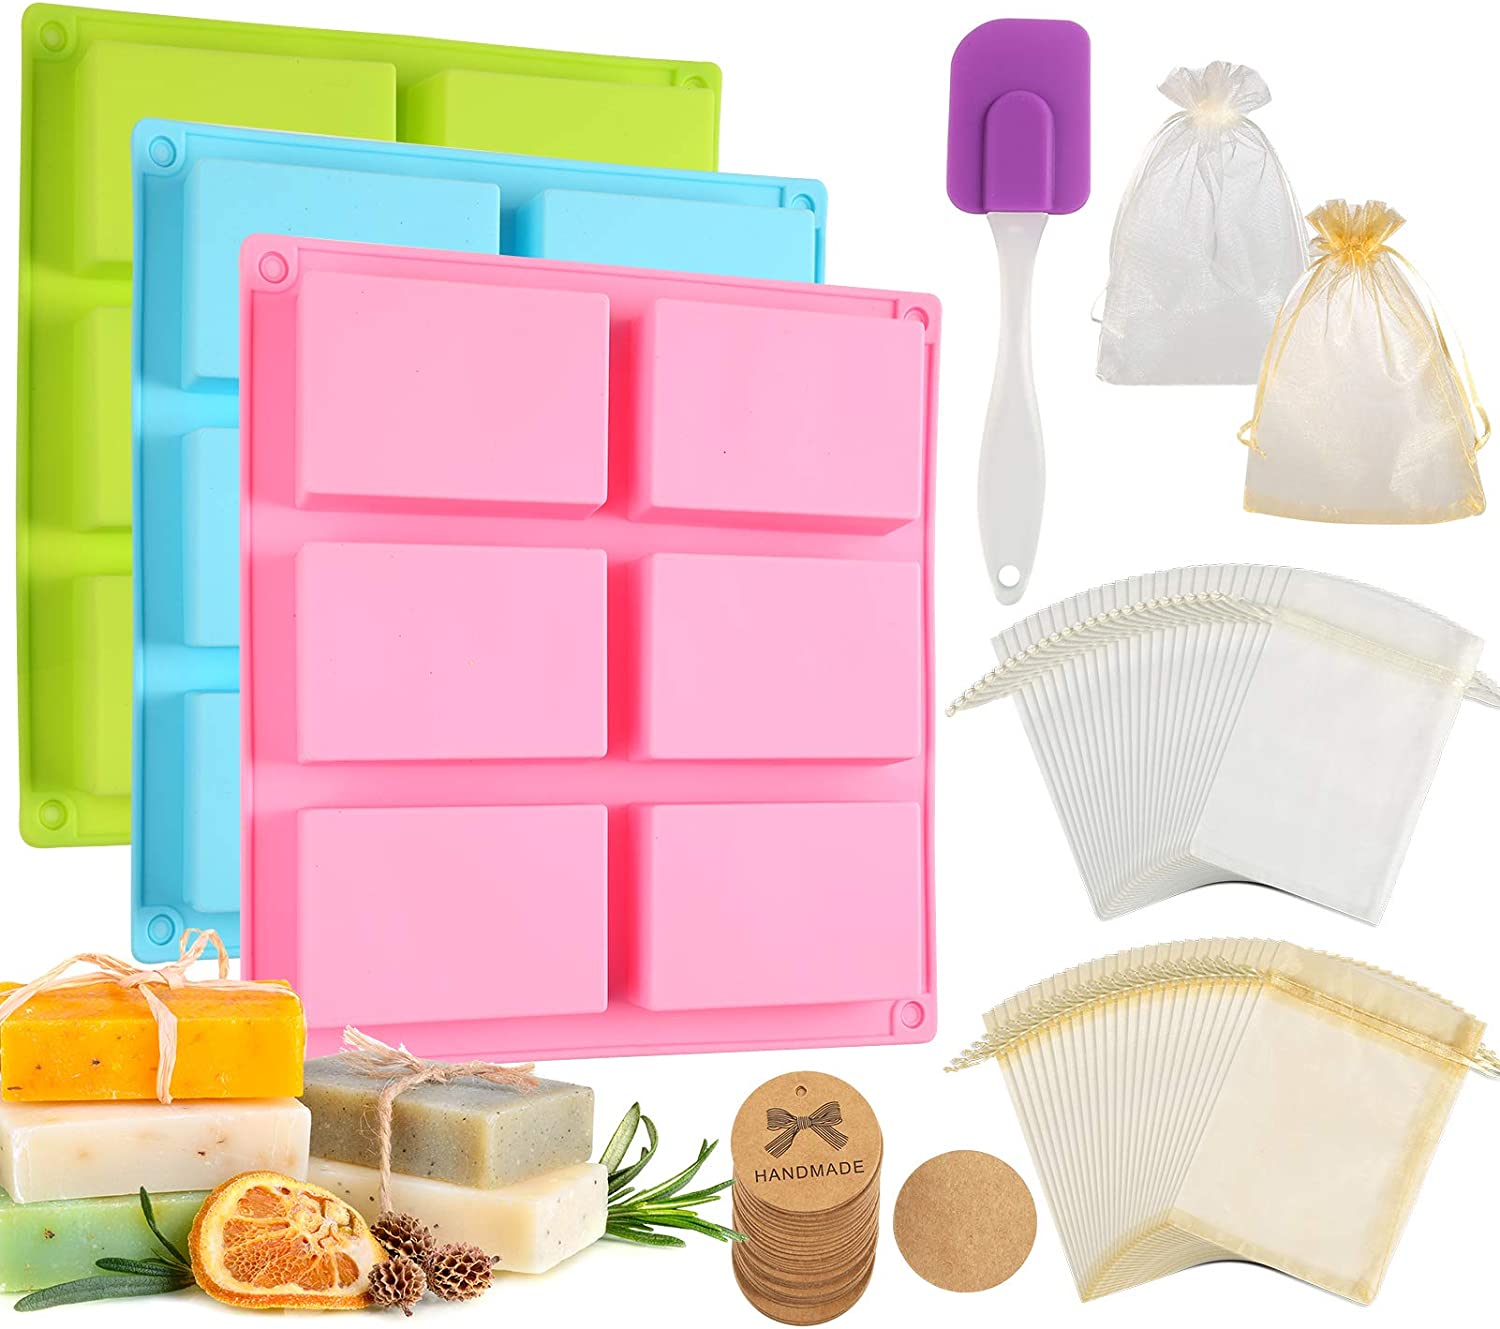 Aoibrloy 104pcs Silicone Soap Making Molds and Set Soap Making Kit with Gift Bag, Lable, Scraper for Making Soap and DIY Homemade Soap Craft